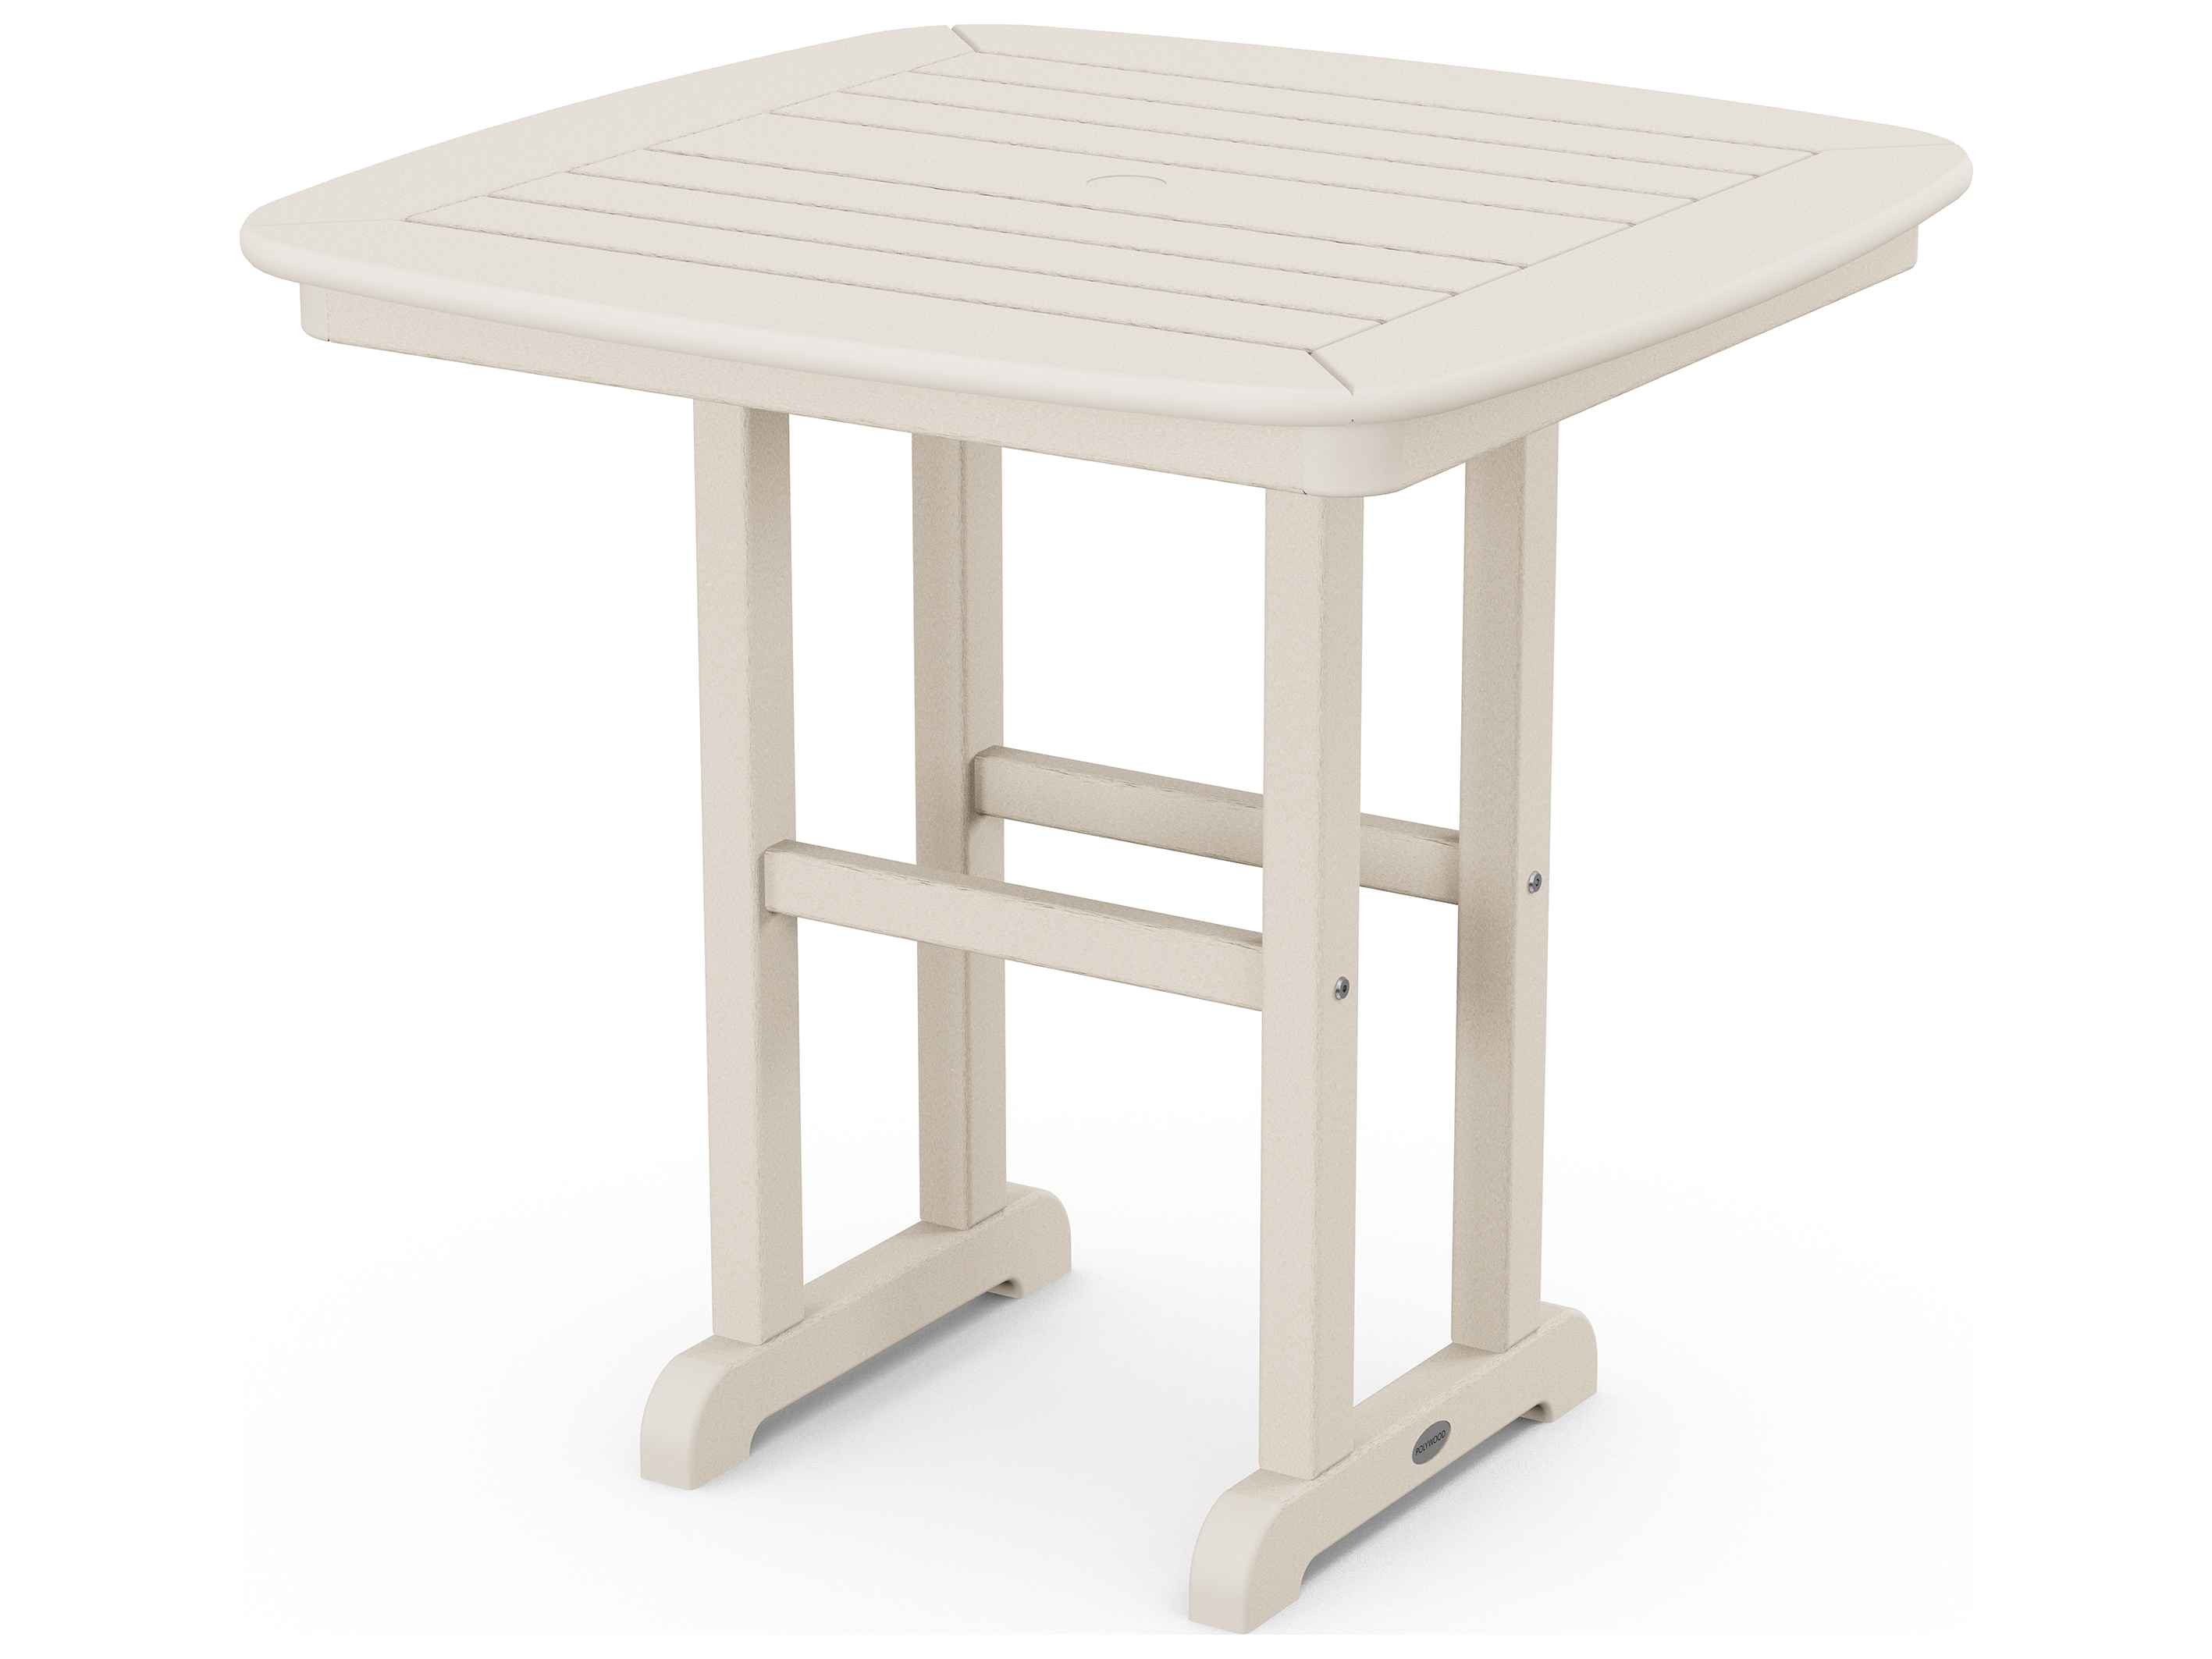 POLYWOOD Nautical Recycled Plastic 31 Square Dining Table NCT31